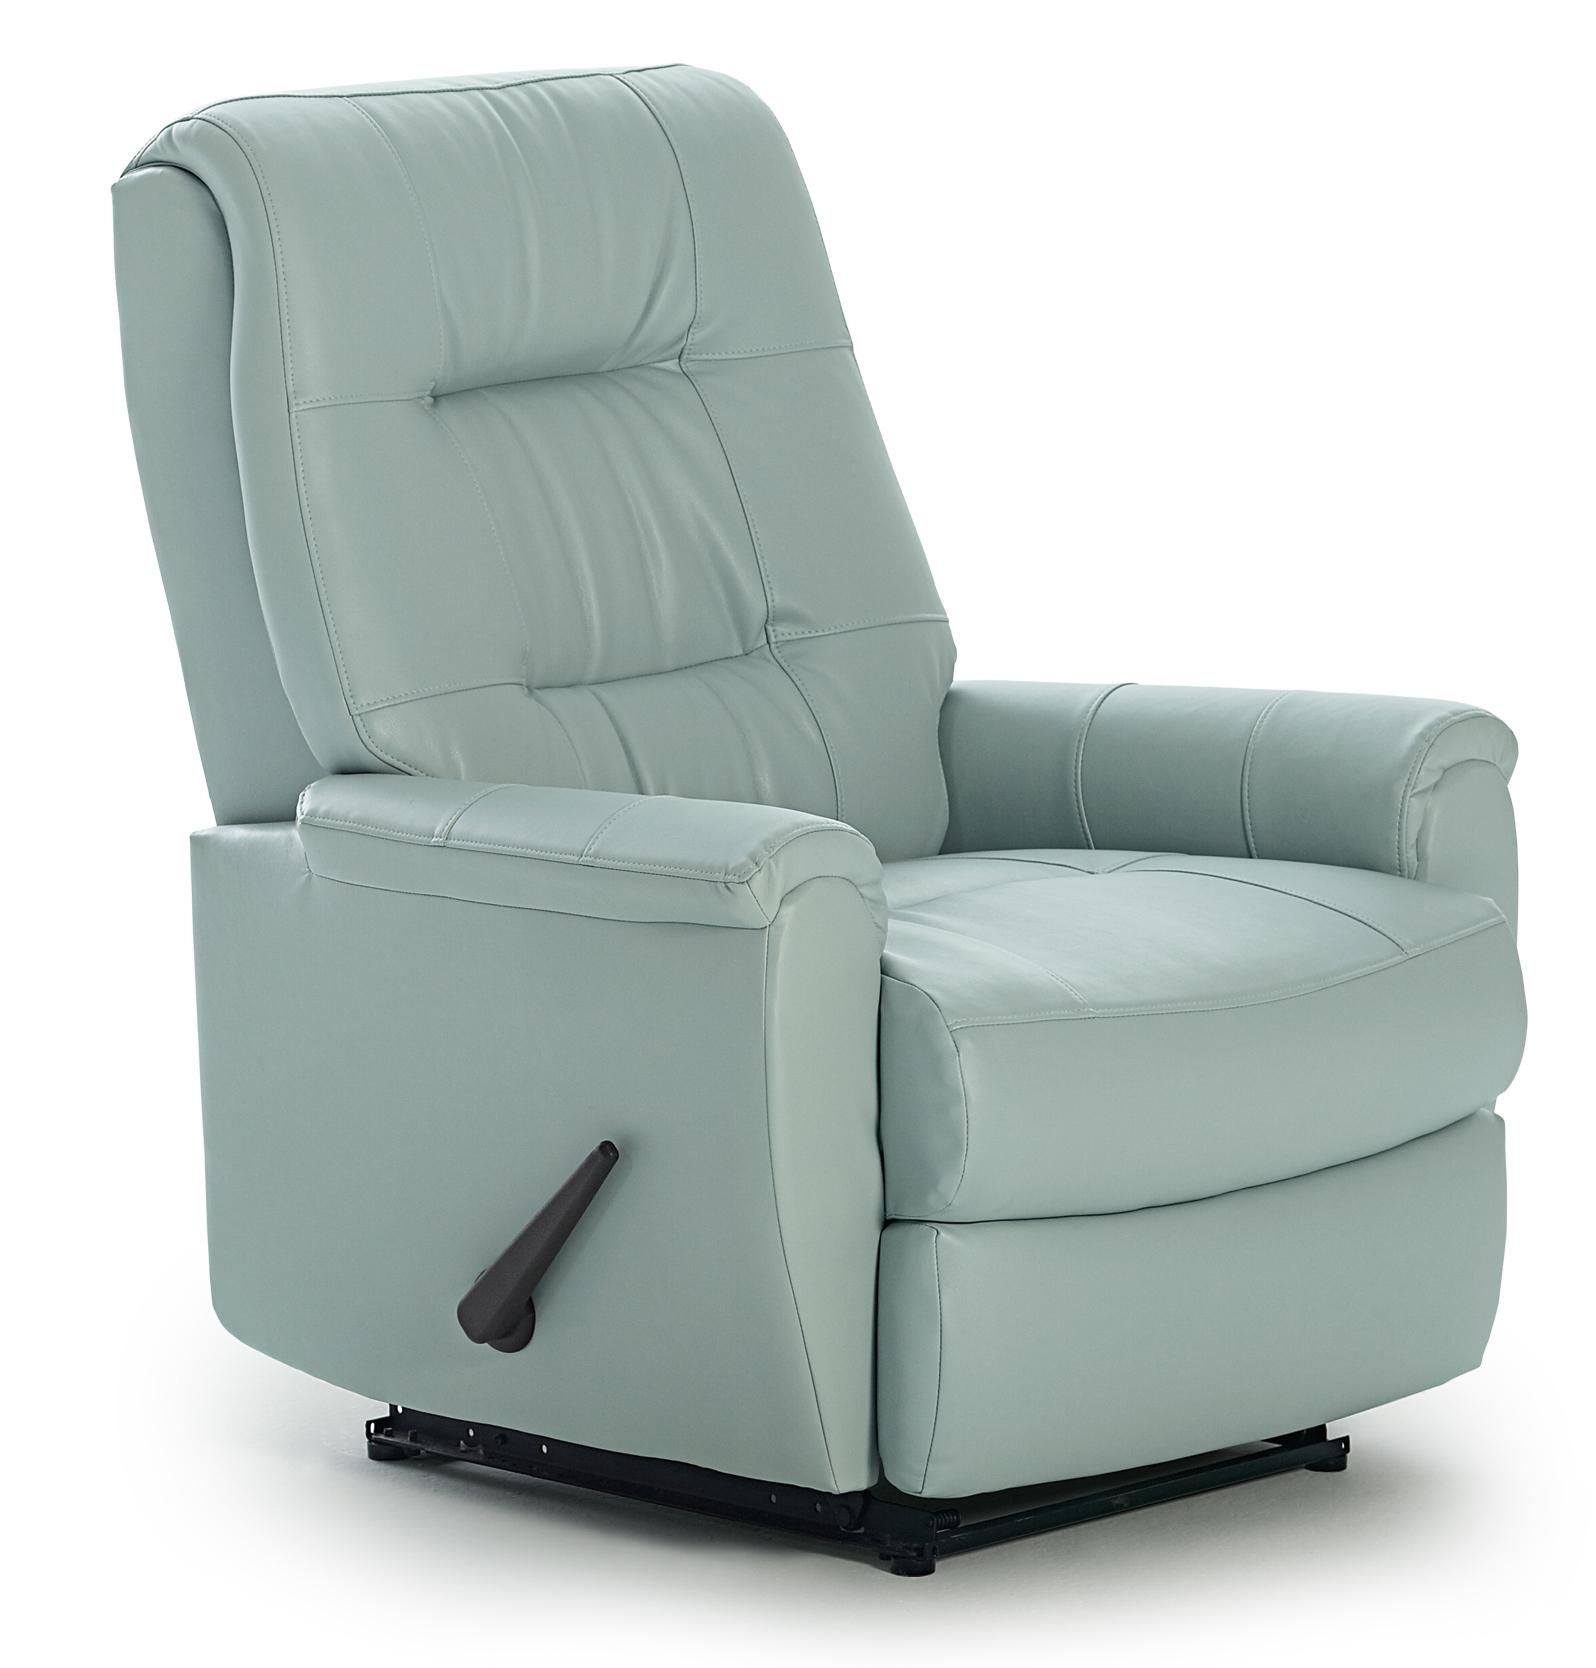 2019 Best Chairs Inc Glider Cool Modern Furniture Check